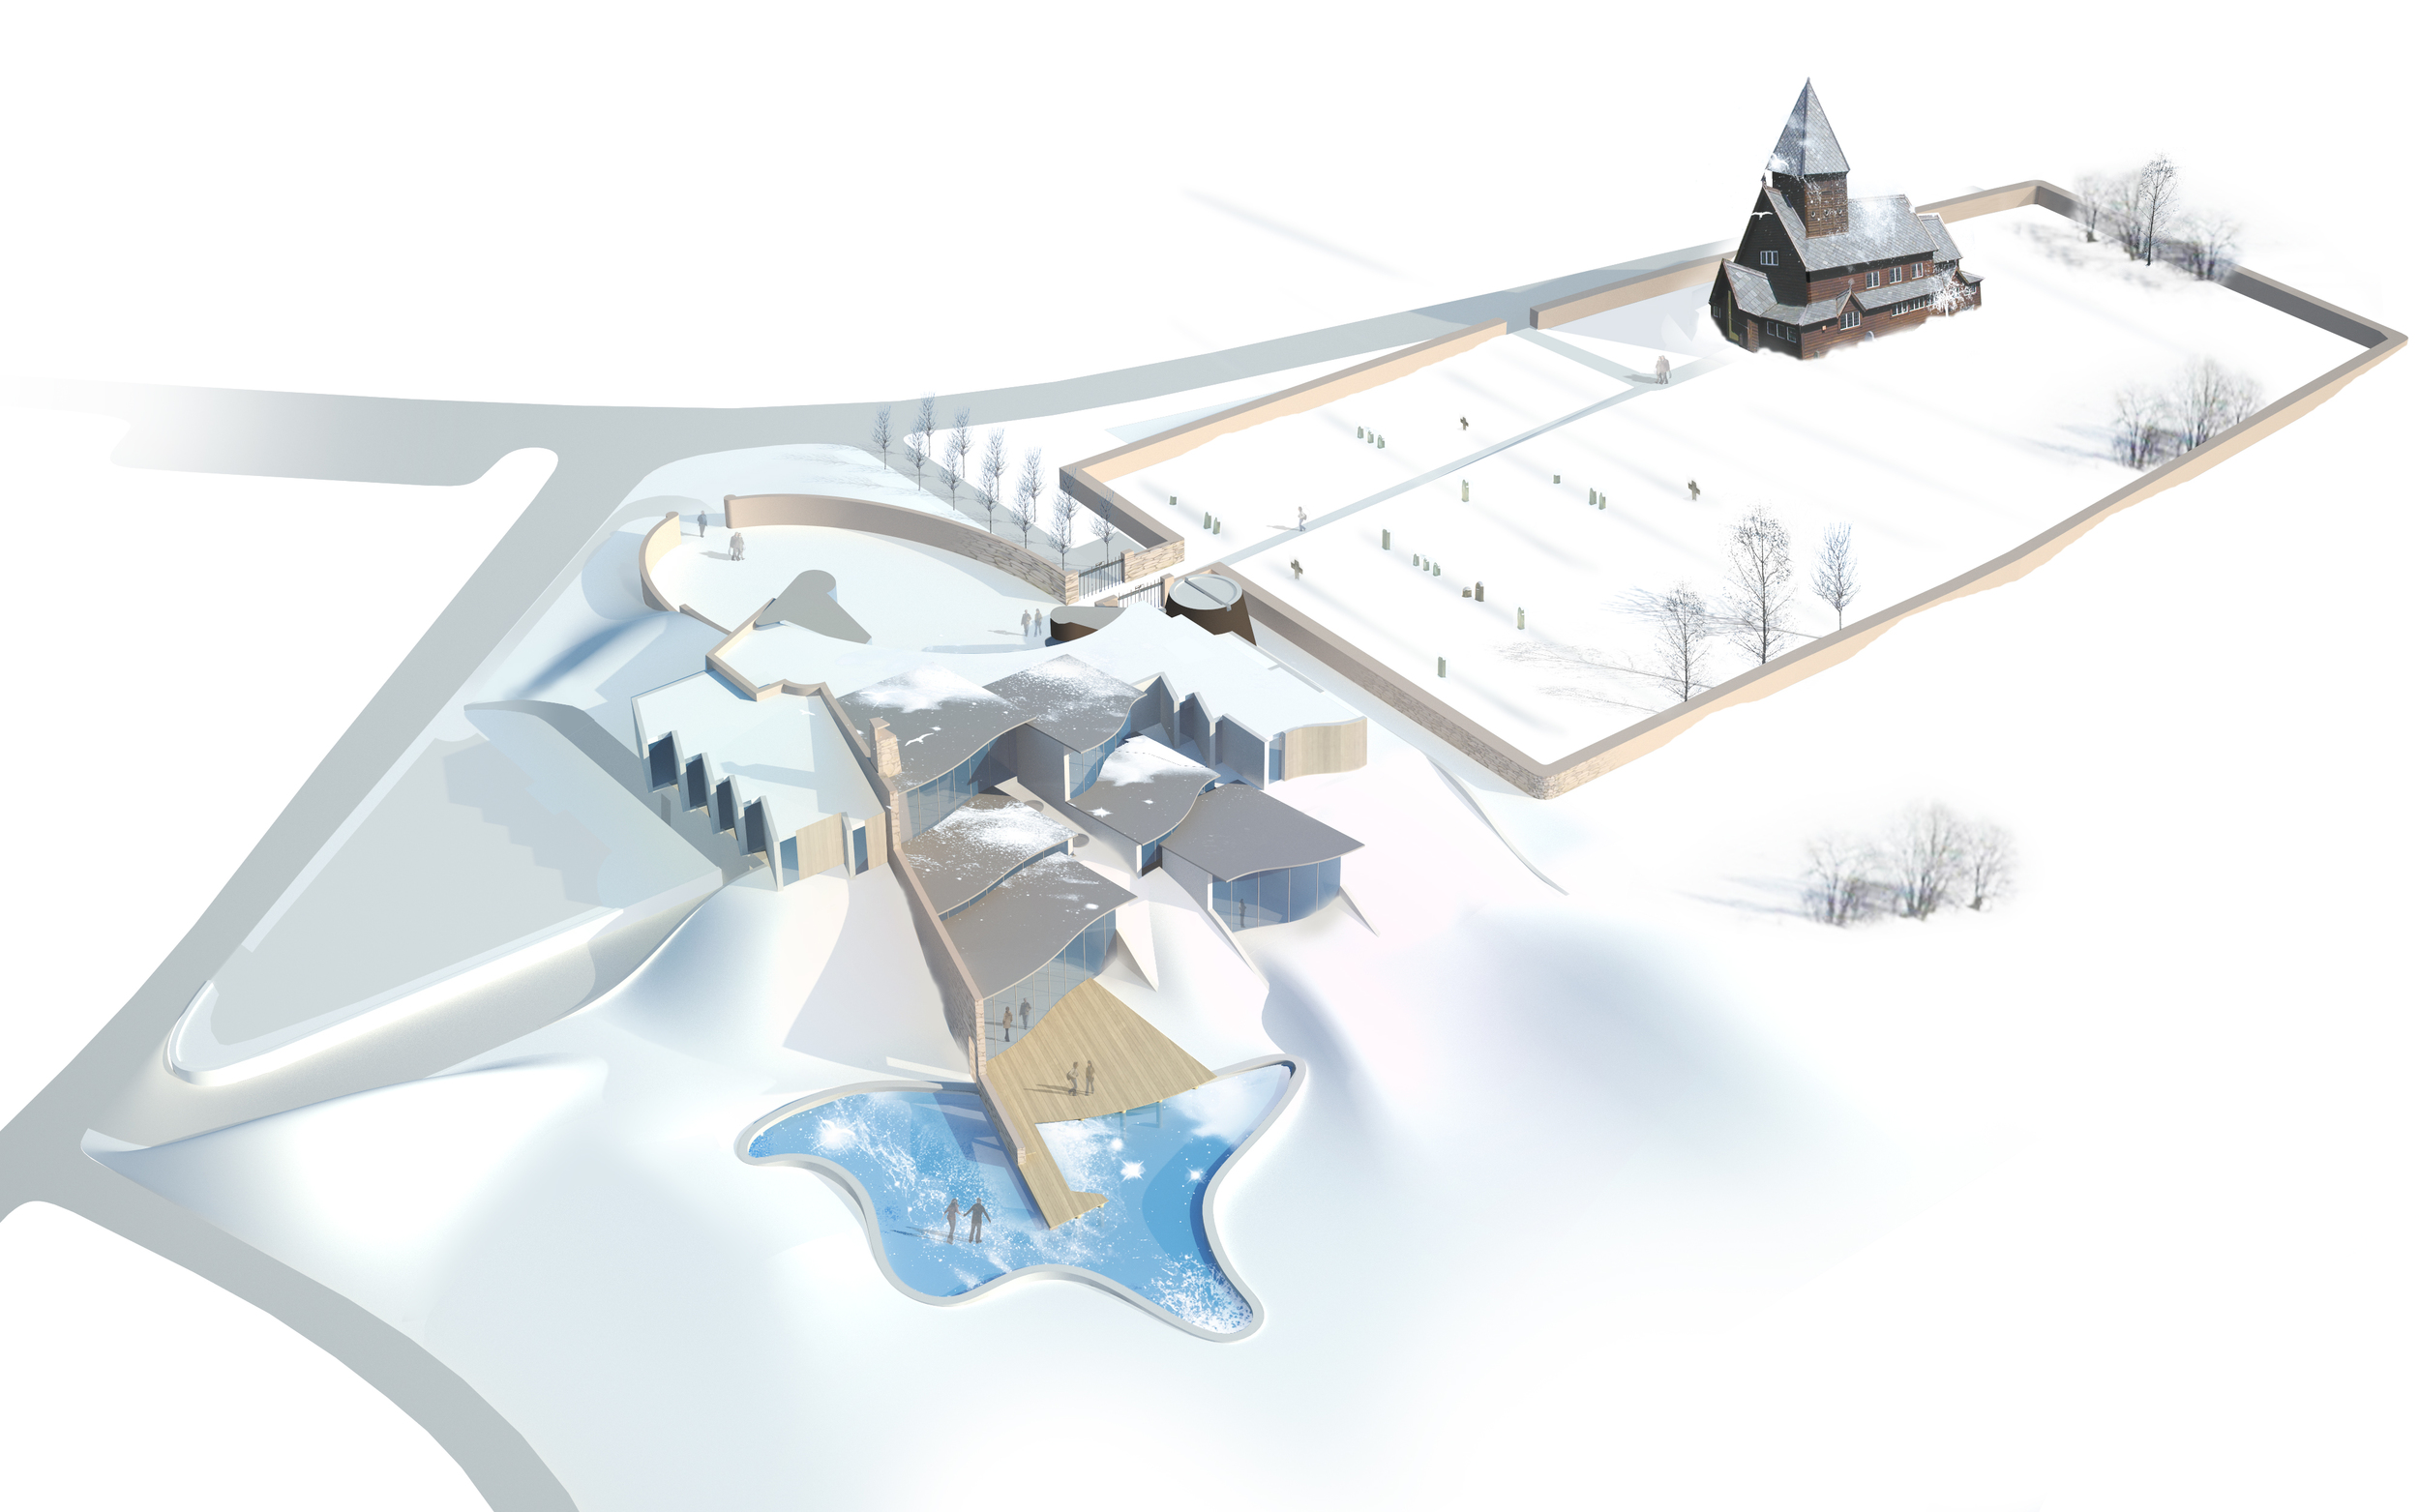 Isometric view of pilgrimage centre with Roldal stave church